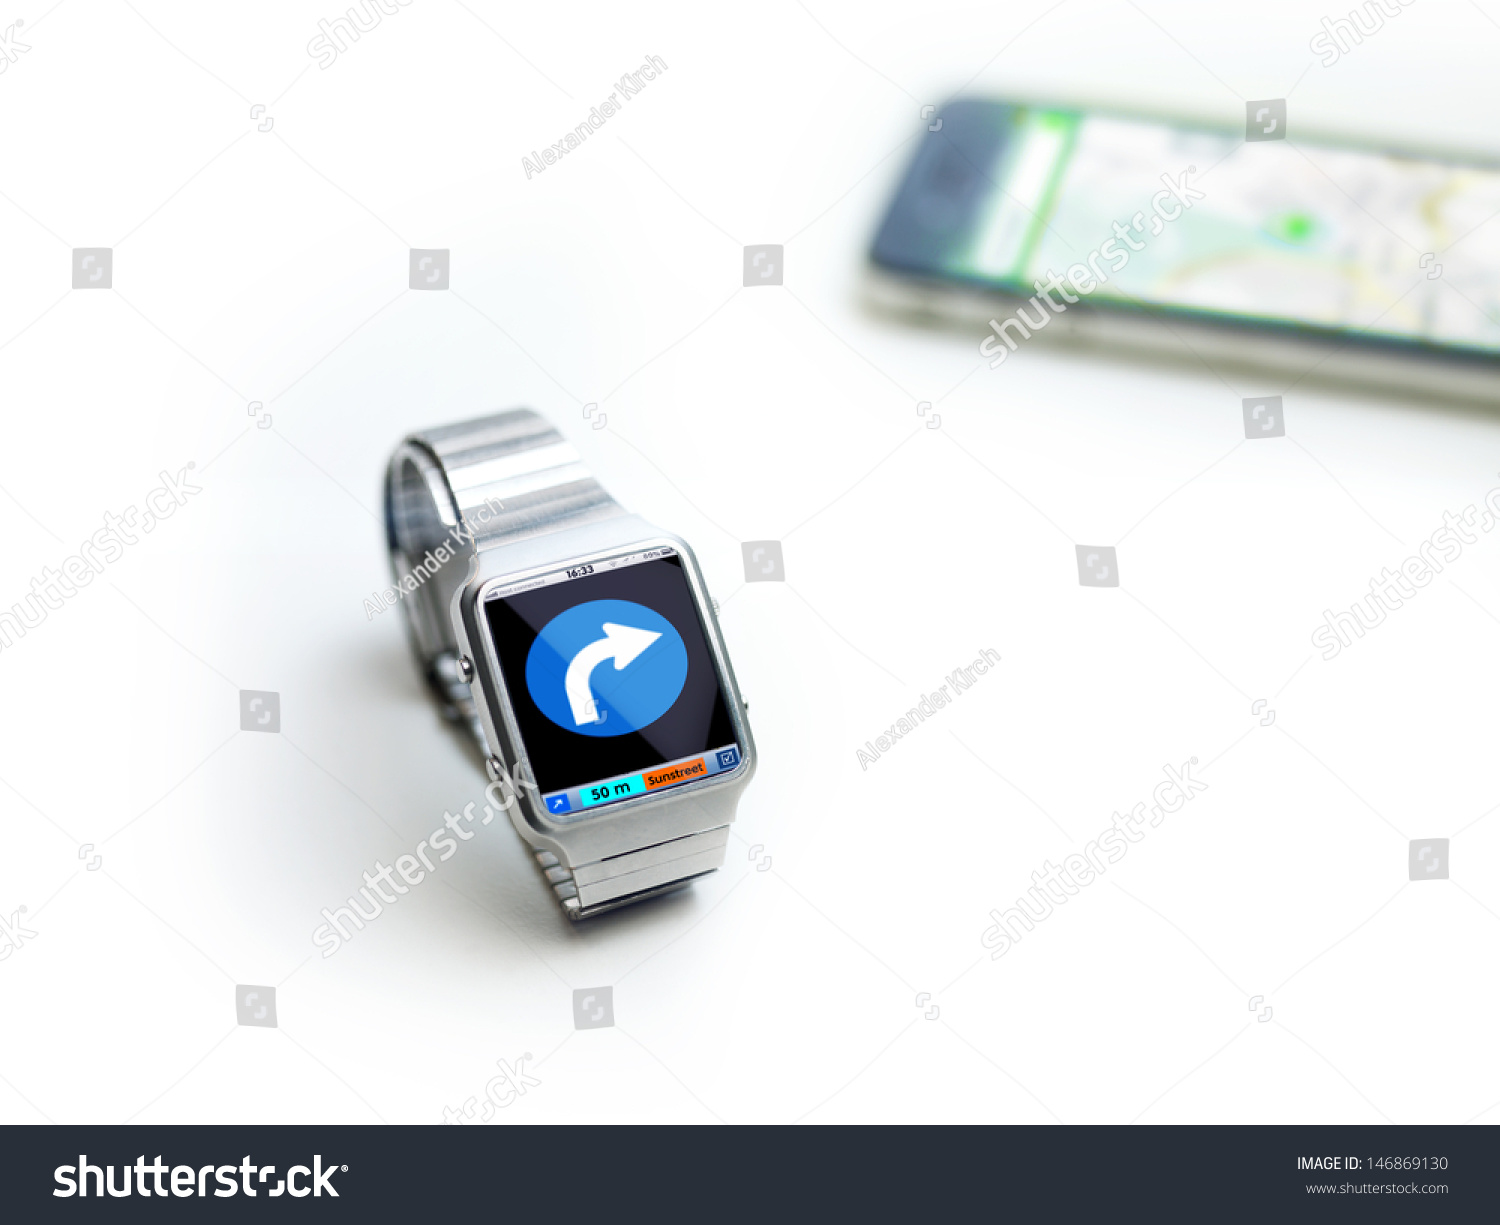 Smartwatch Devices & Accessories - Best Buy